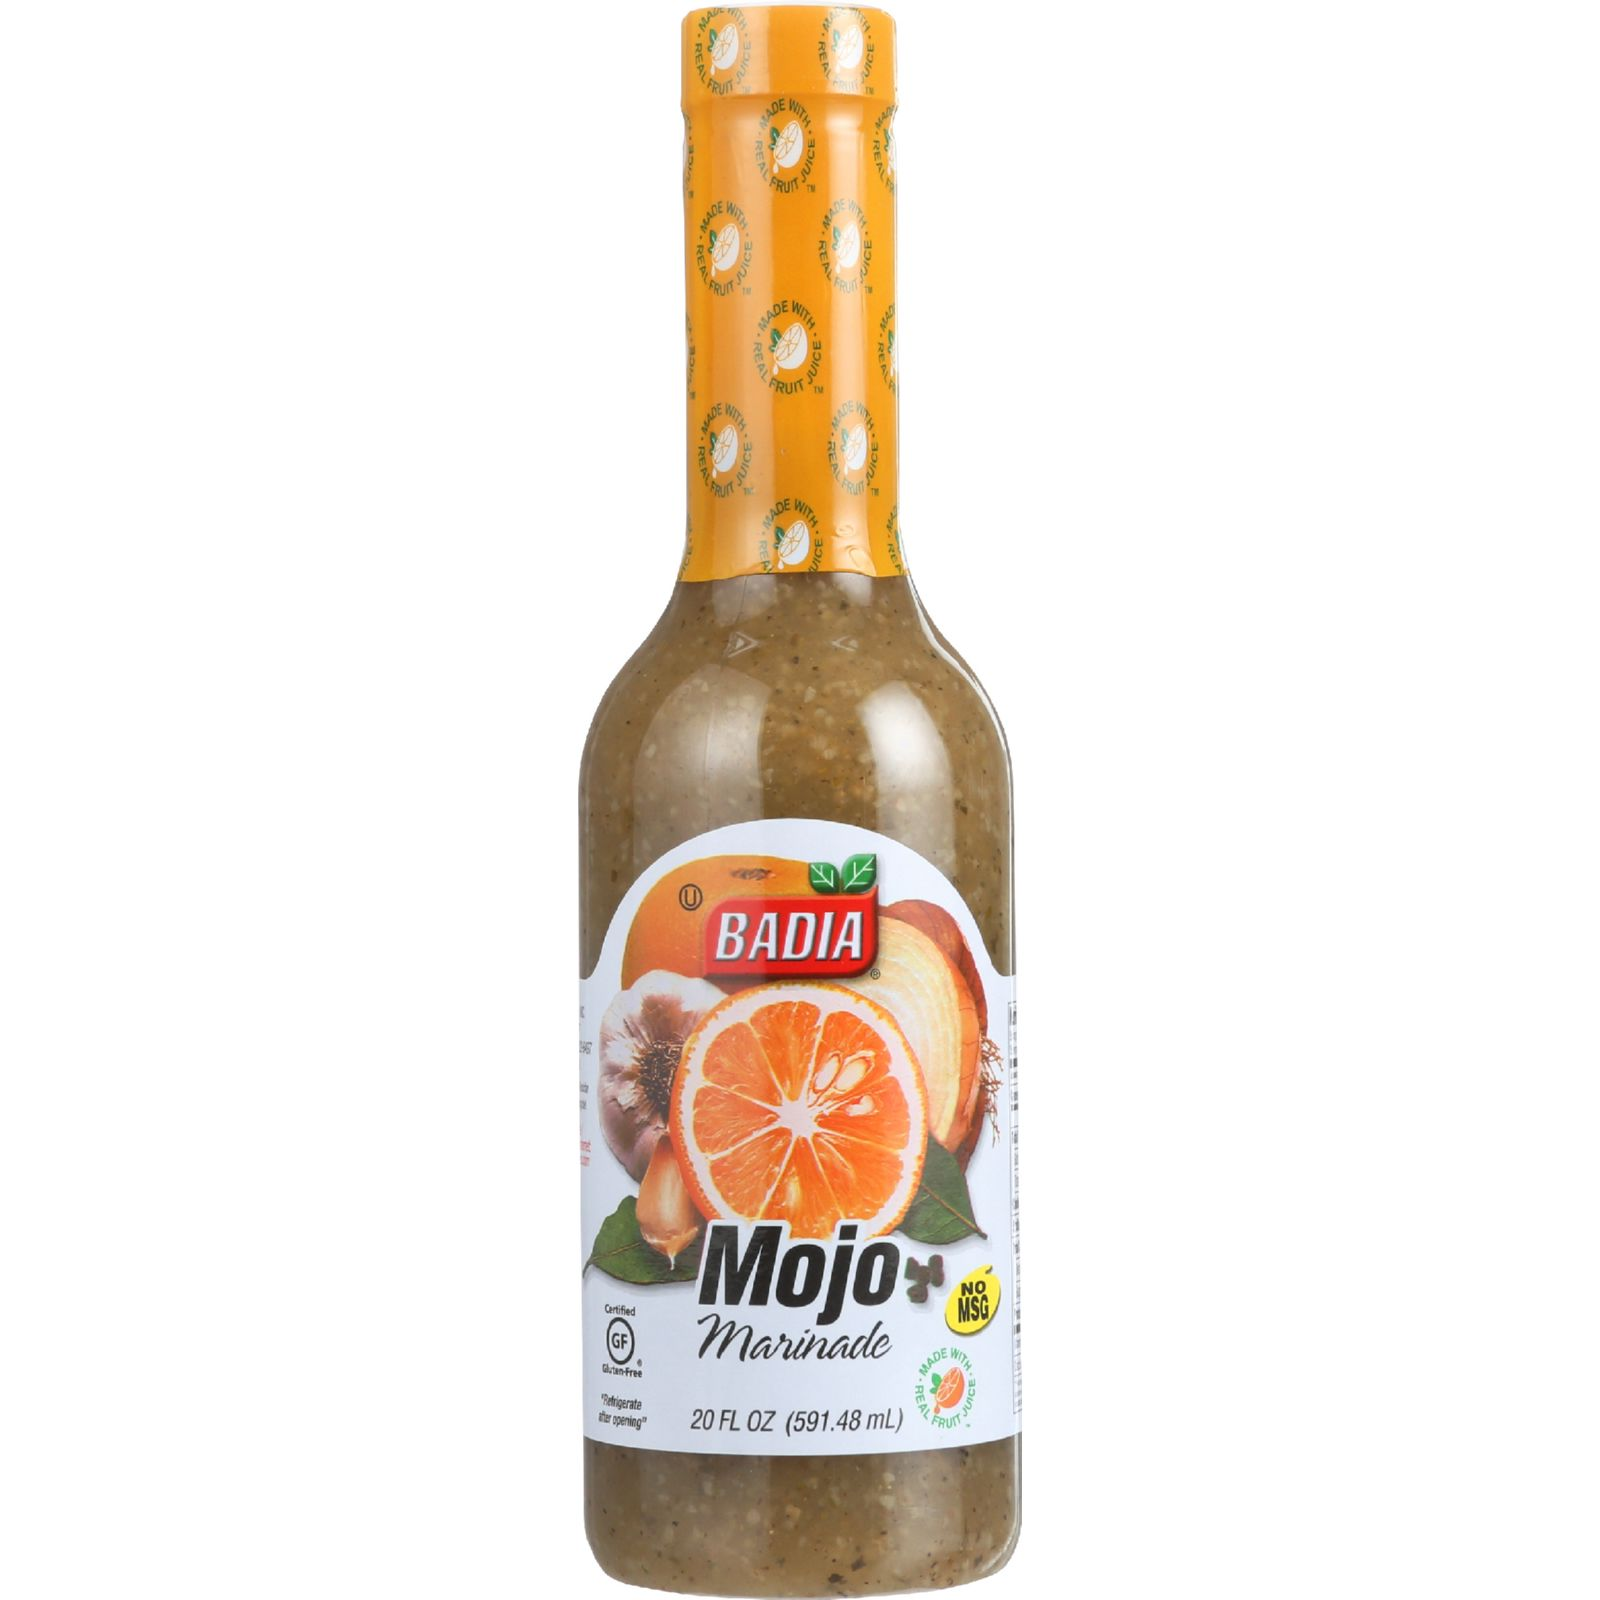 Badia Spices Marinade - Mojo - 20 oz - case of 12